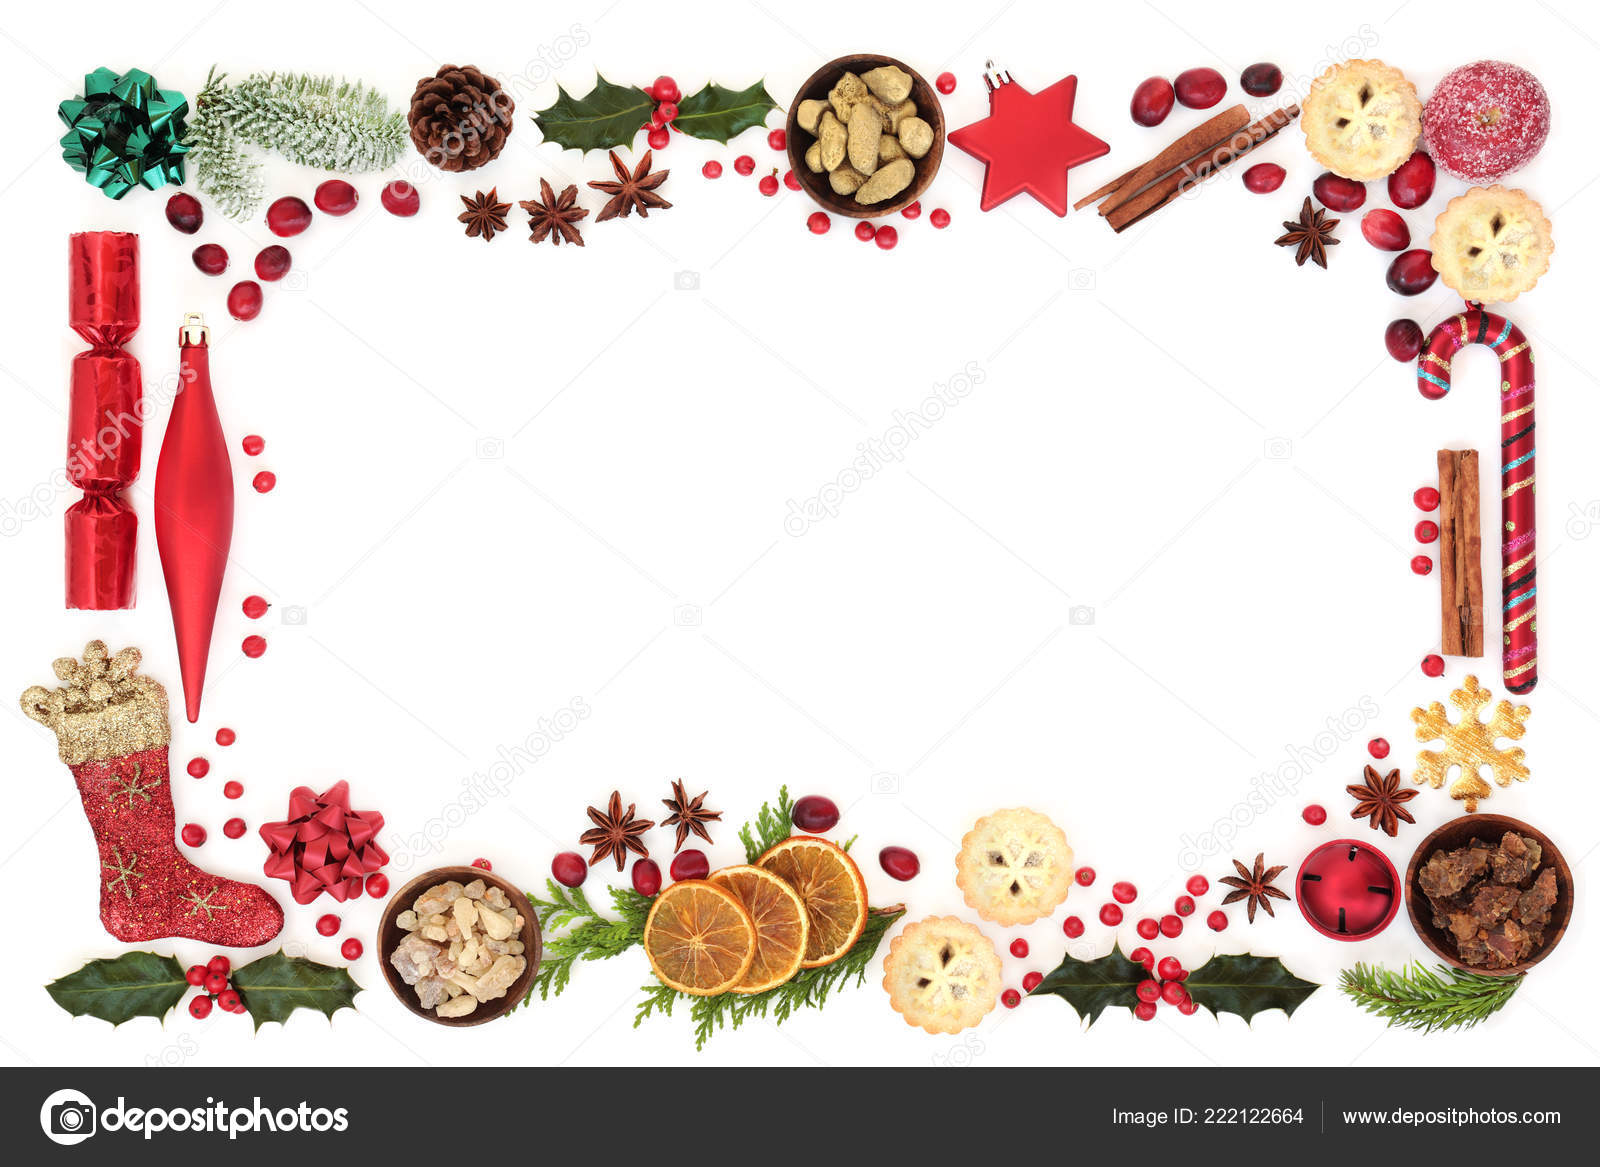 Gold Frankincense And Myrrh Christmas Gifts.Christmas Festive Background Border Decorations Food Winter